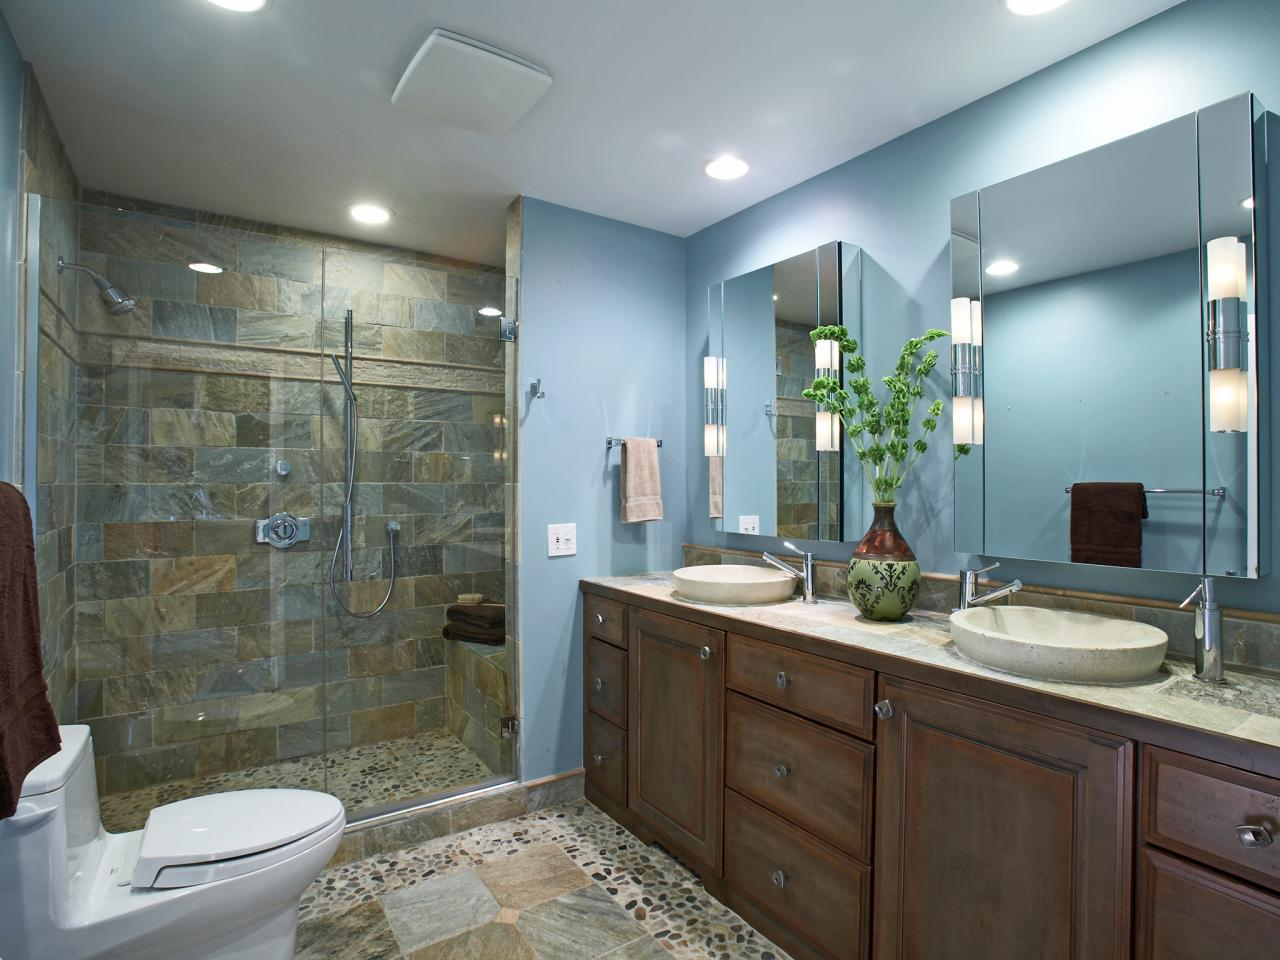 Vanity Lighting & Vanity Lighting | HGTV azcodes.com